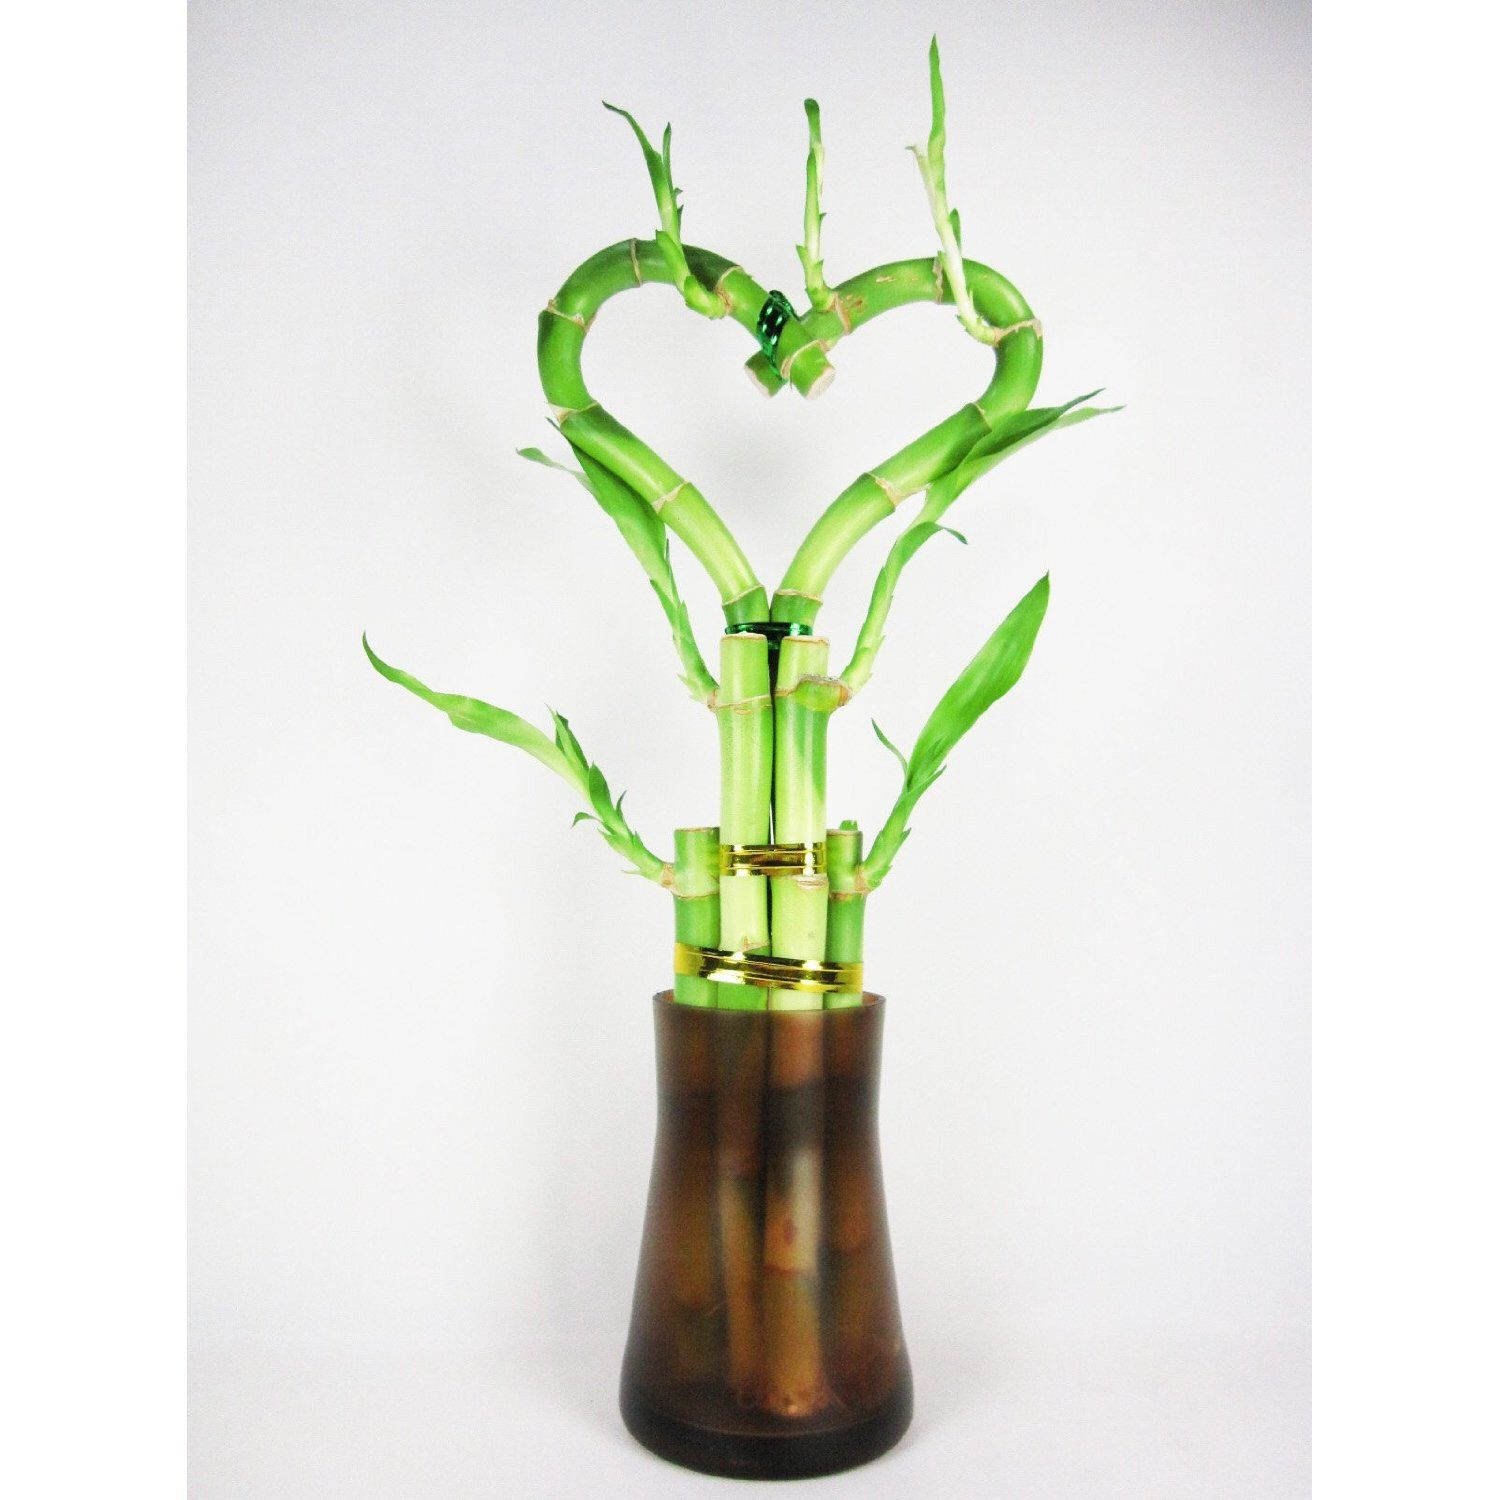 What do the colors of ribbon symbolize on lucky bamboo ehow - Live 6 Heart Style Lucky Bamboo Orange Tall Glasses Vase Free Shipping Nice Gift